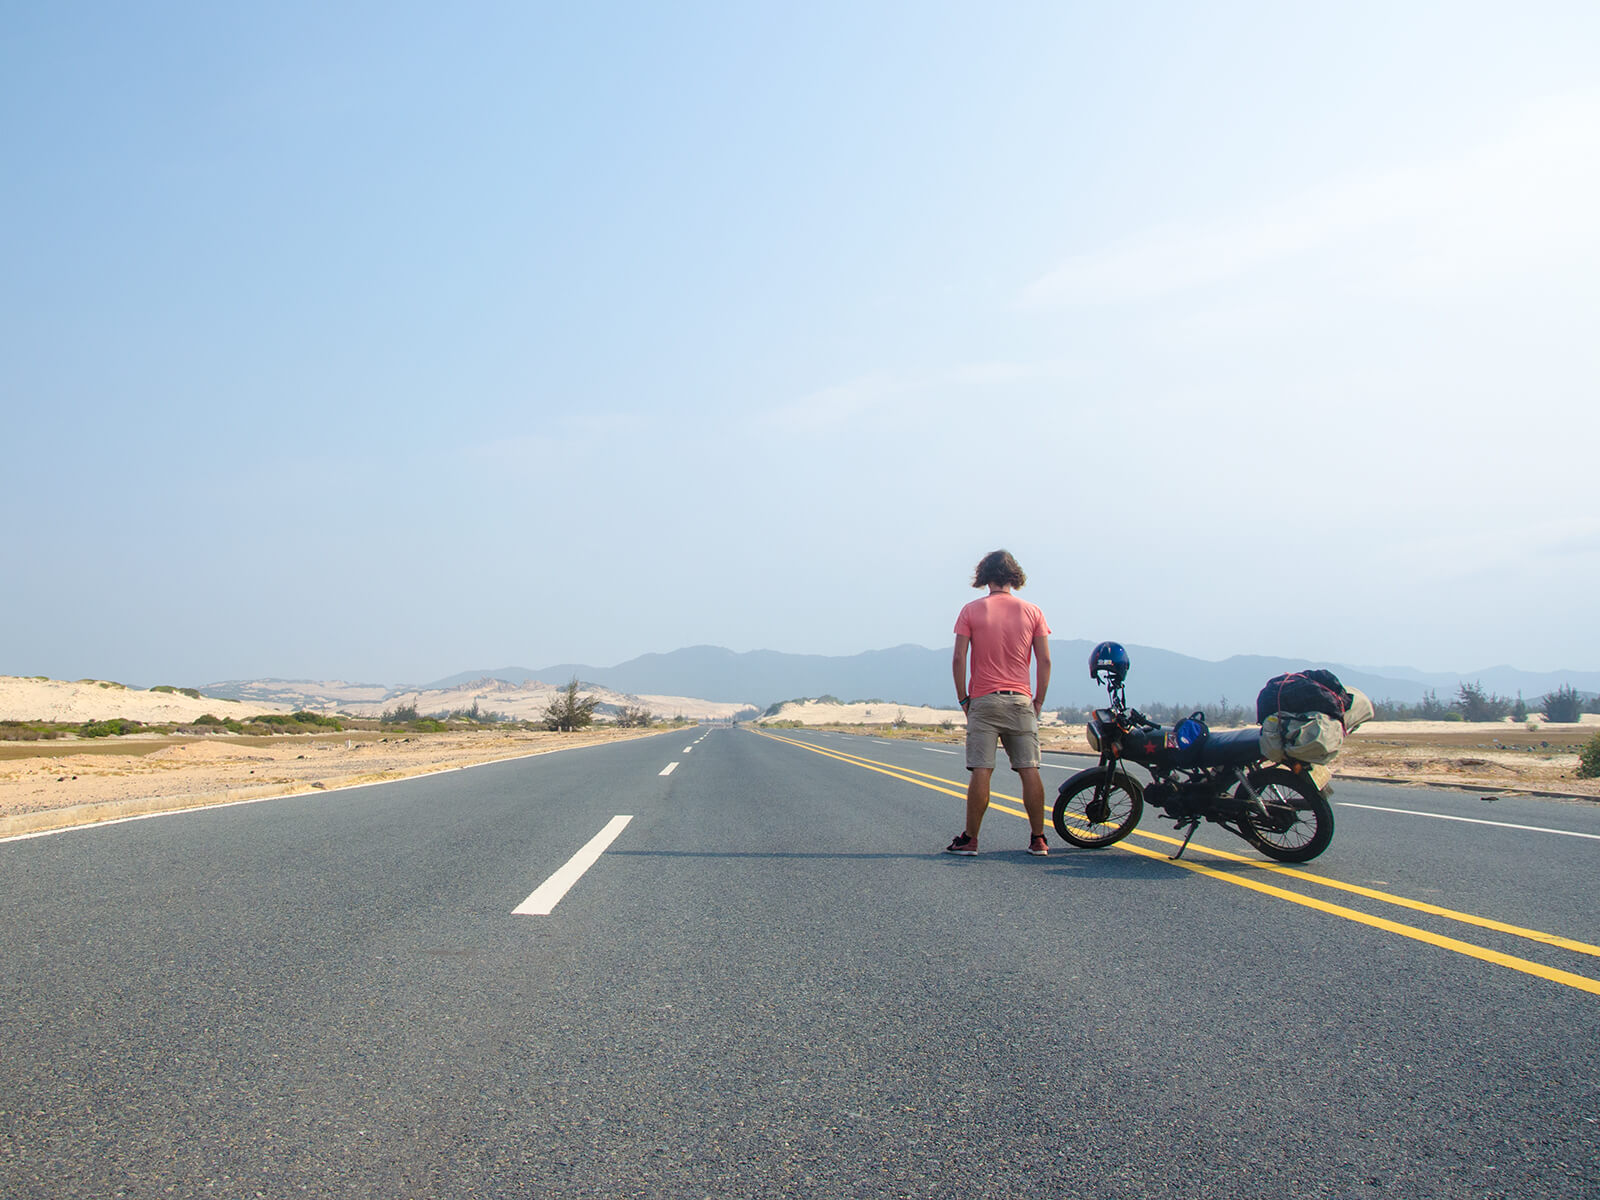 Long-term travel will lead you down roads you never even knew existed.